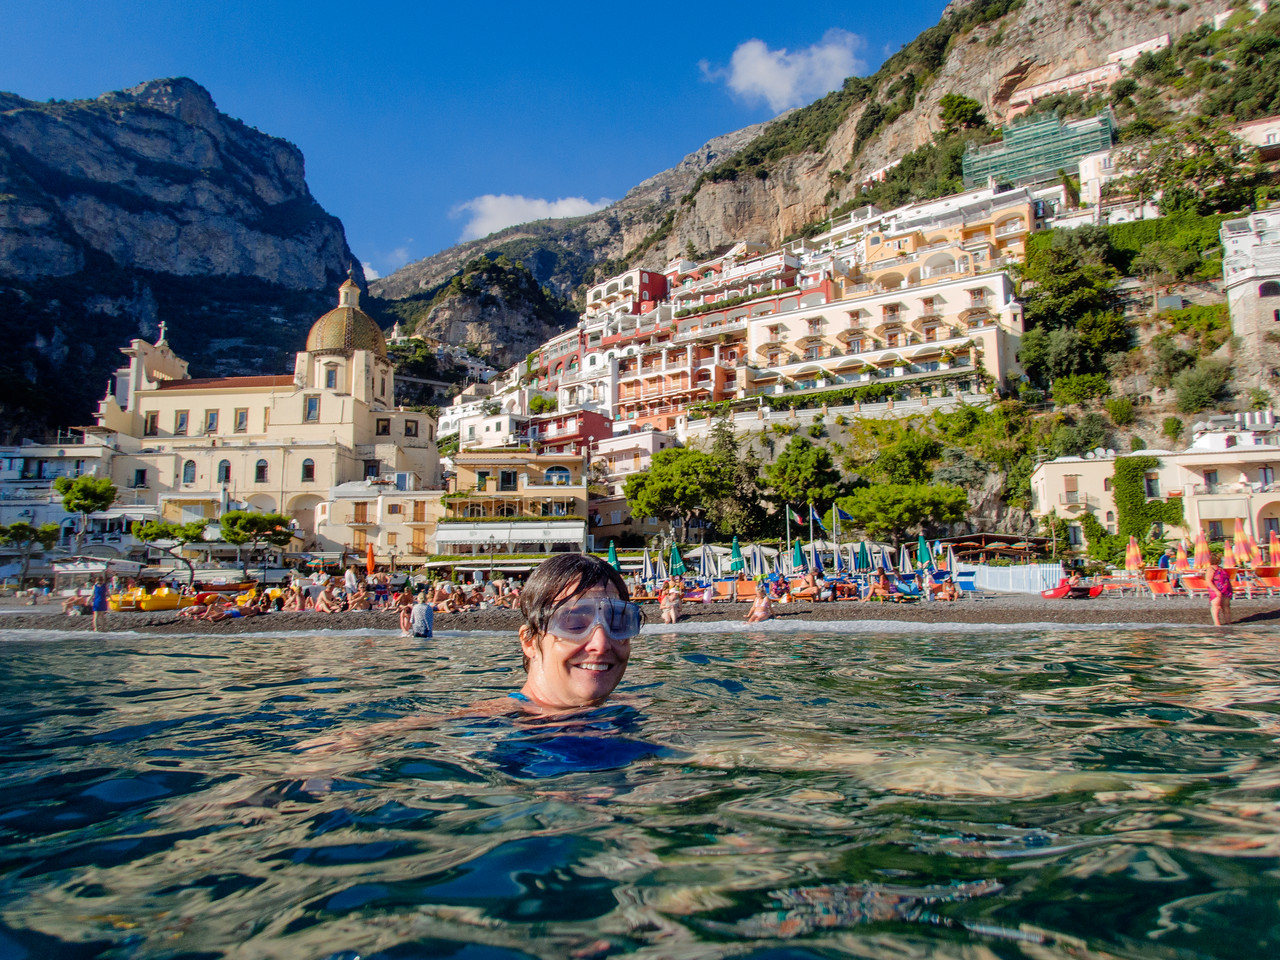 Lisa swimming in Positano.